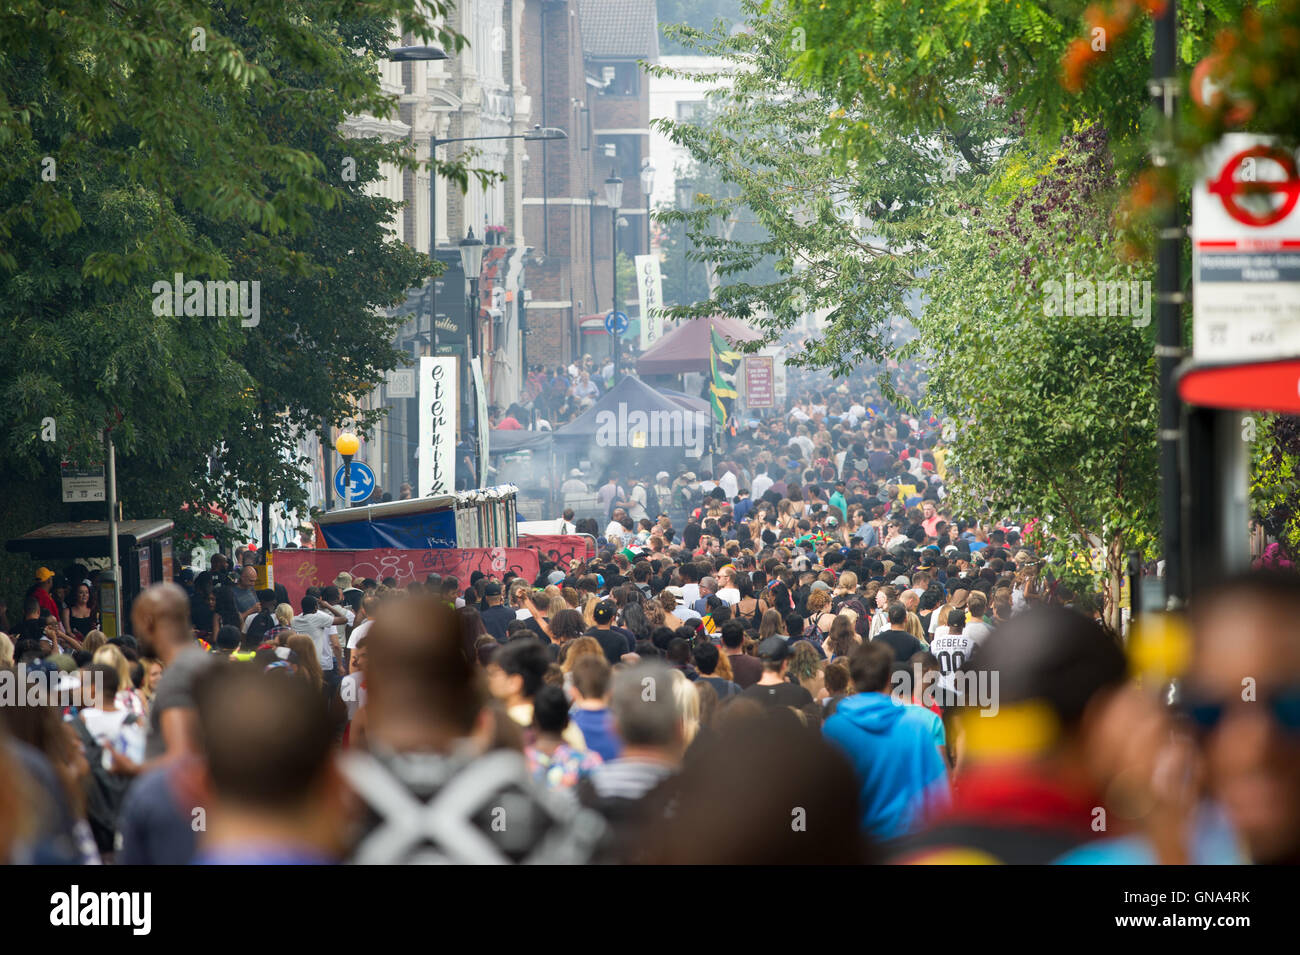 London, England, UK. 29th August 2016. Notting Hill Carnival 2016 during the bank holiday Monday.  Large Crowds - Stock Image